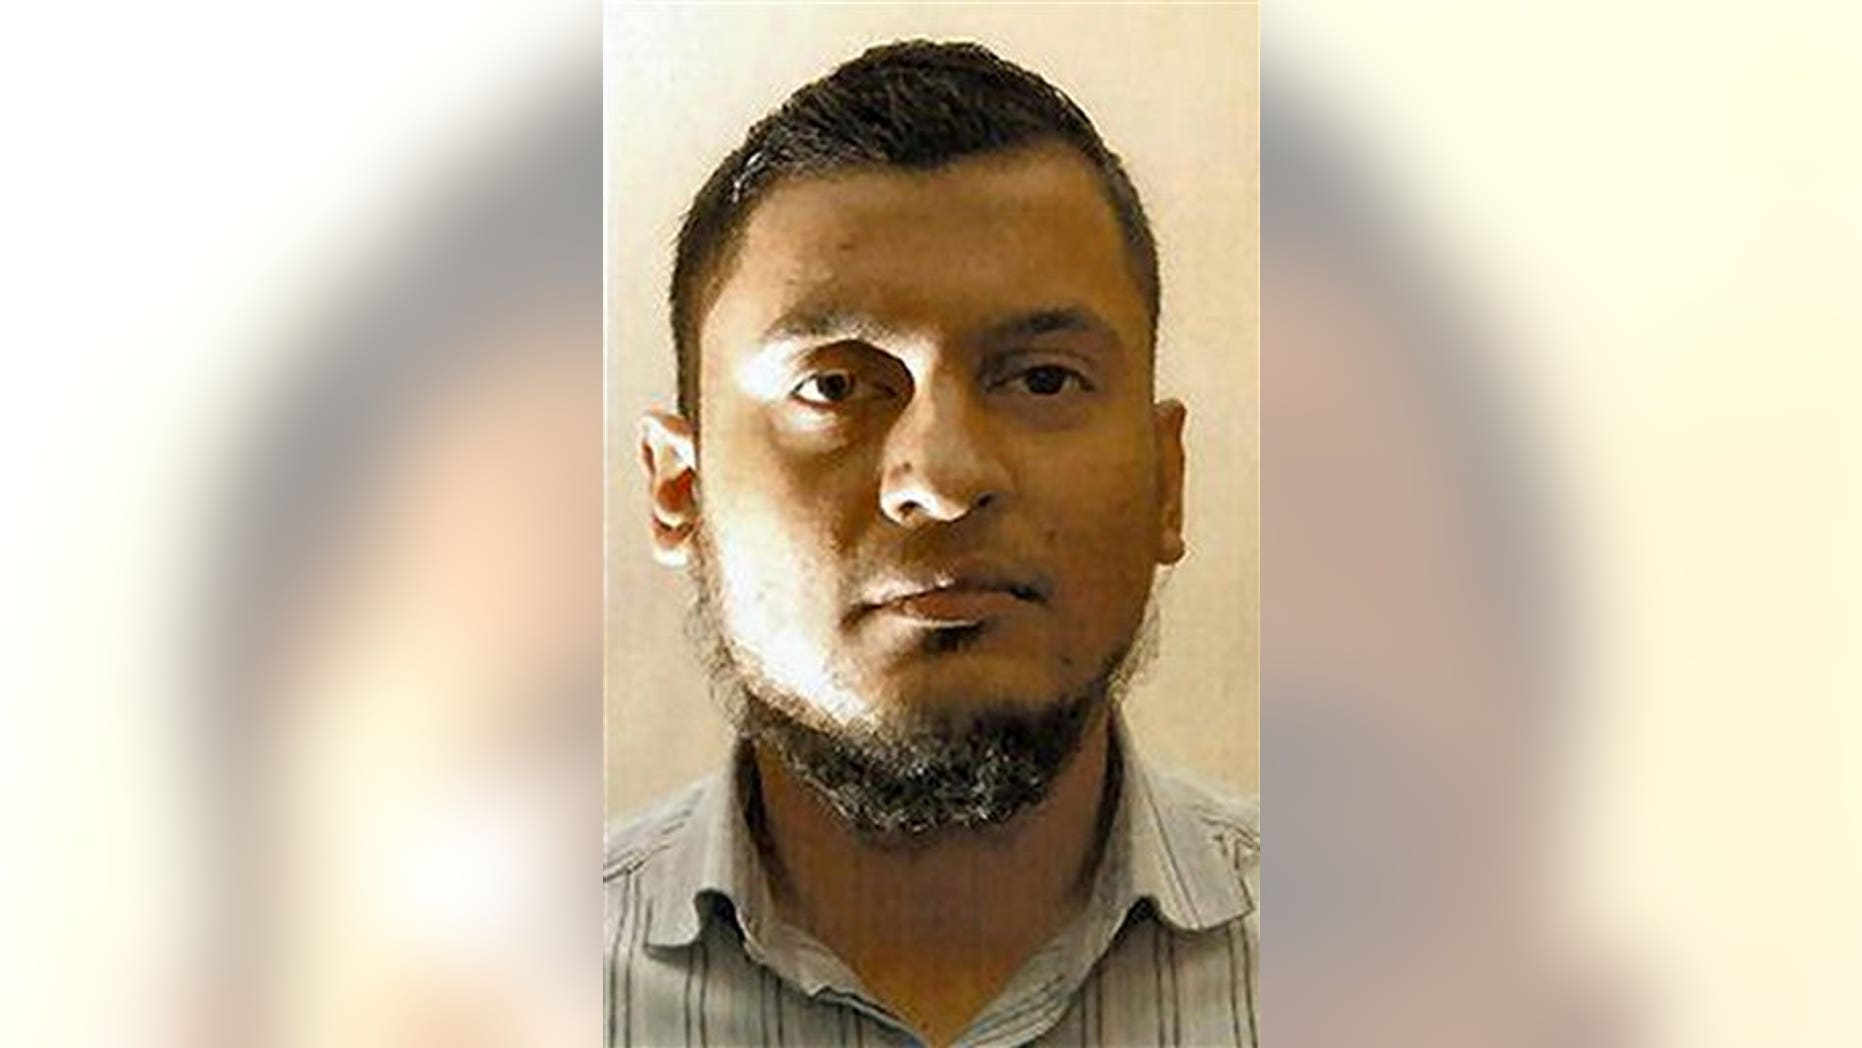 This undated photo released by the British Metropolitan Police shows Rajib Karim who was found guilty Monday Feb. 28, 2011 at Woolwich Crown Court in London of plotting to blow up a plane while working as a computer specialist with British Airways.